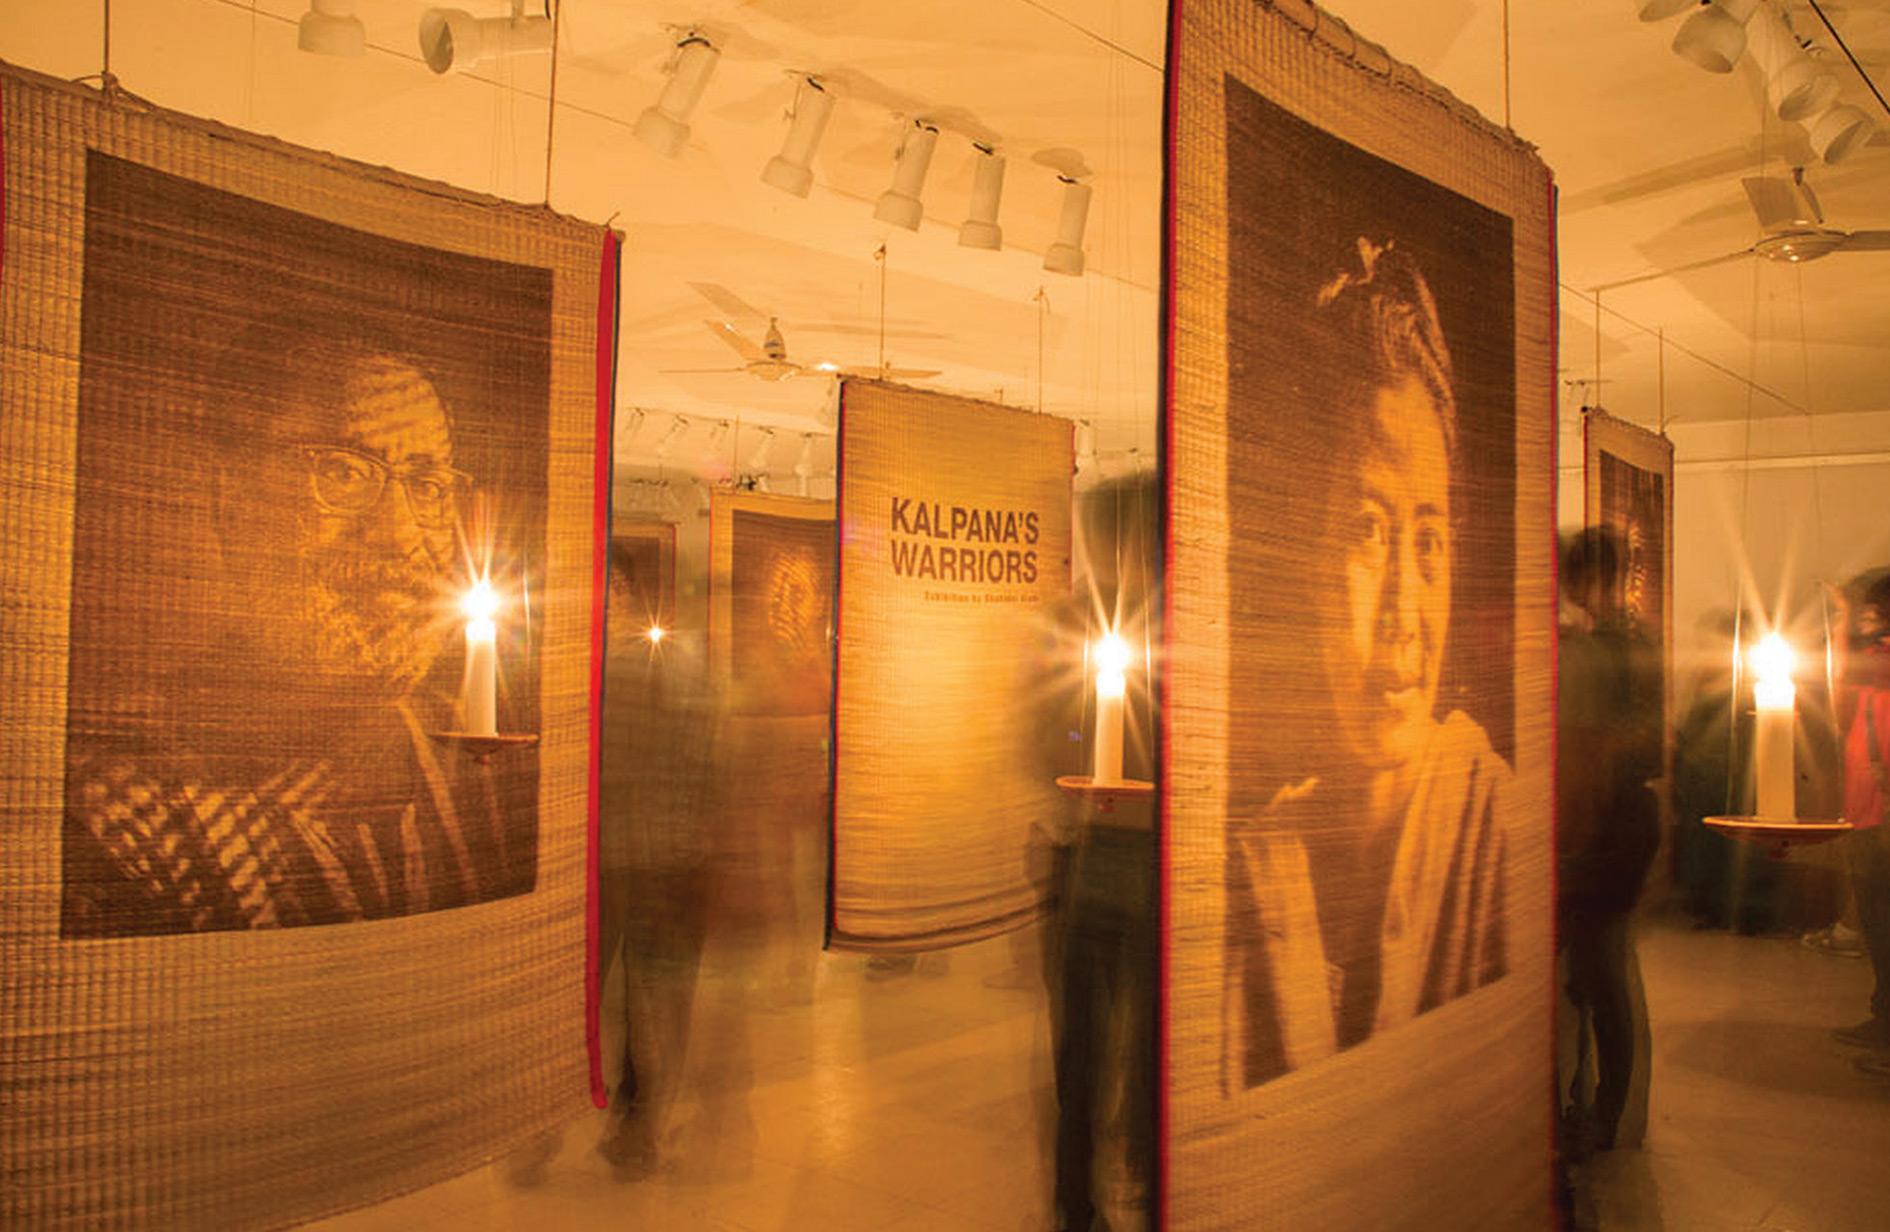 A reminder that a nation that fought oppression cannot rule by oppression: the Kalpana's Warriors exhibition.